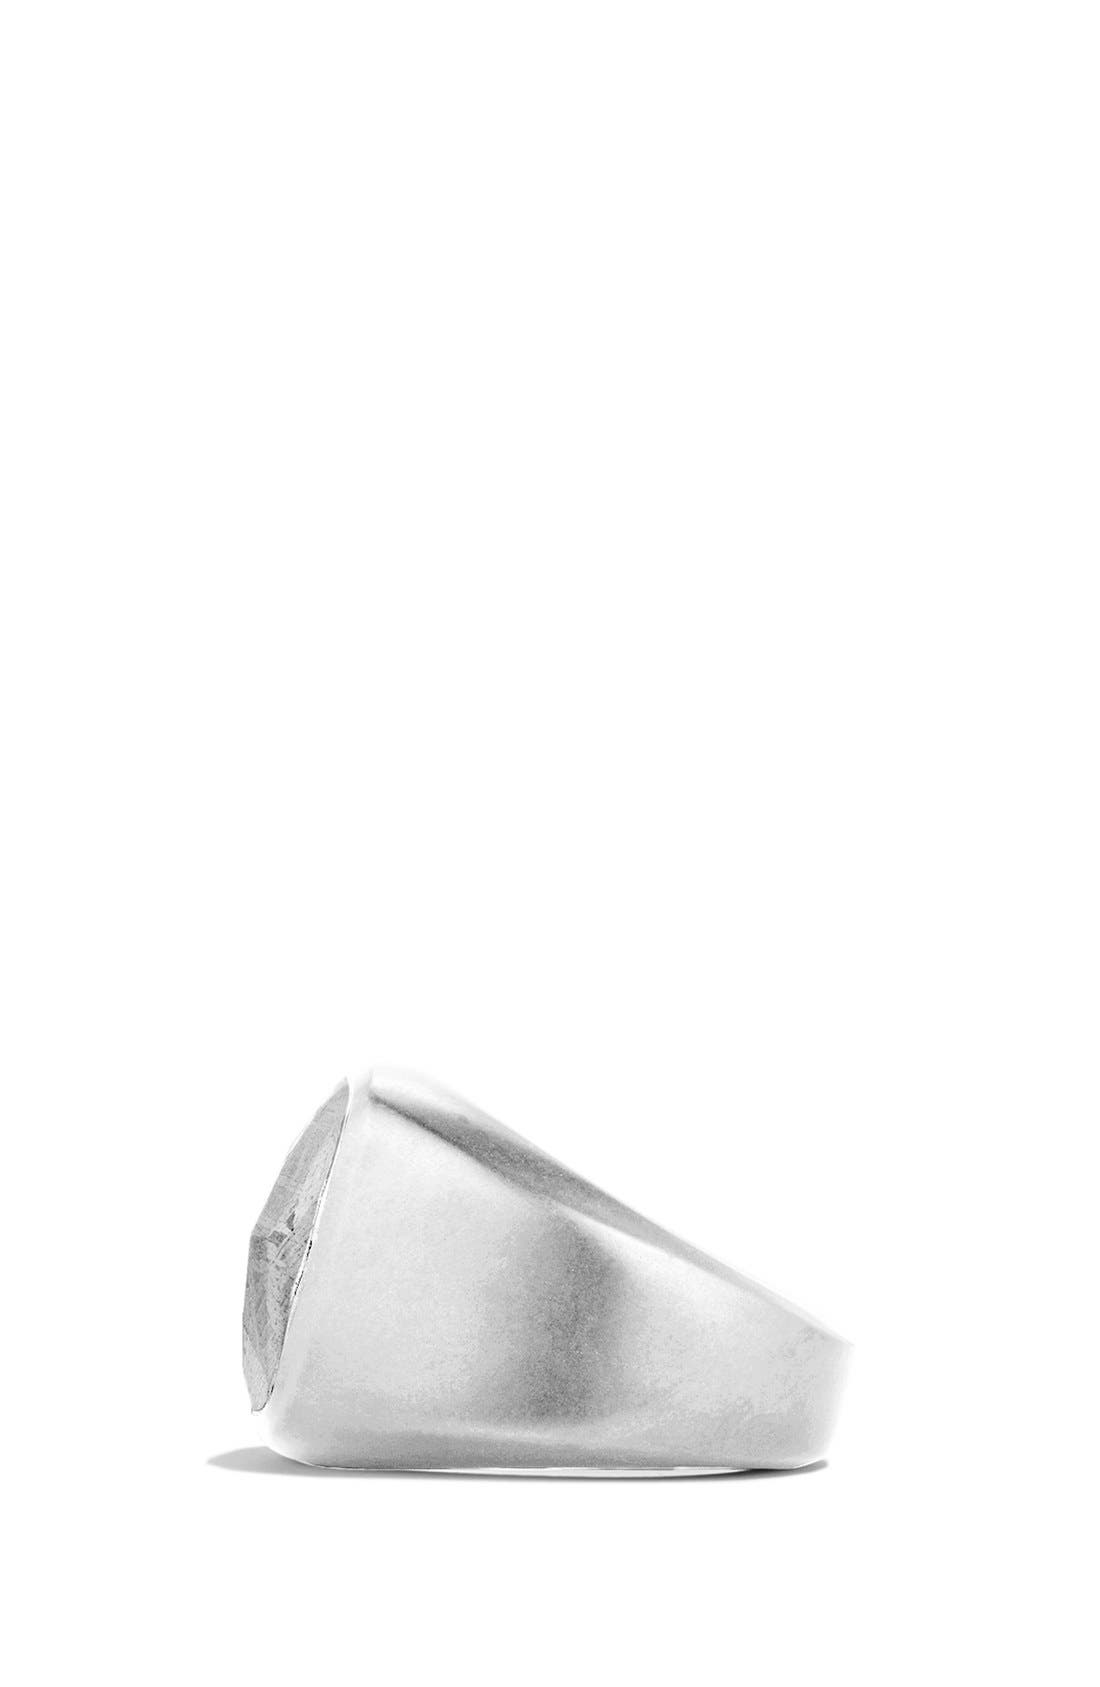 Signet Ring with Meteorite,                             Alternate thumbnail 3, color,                             030